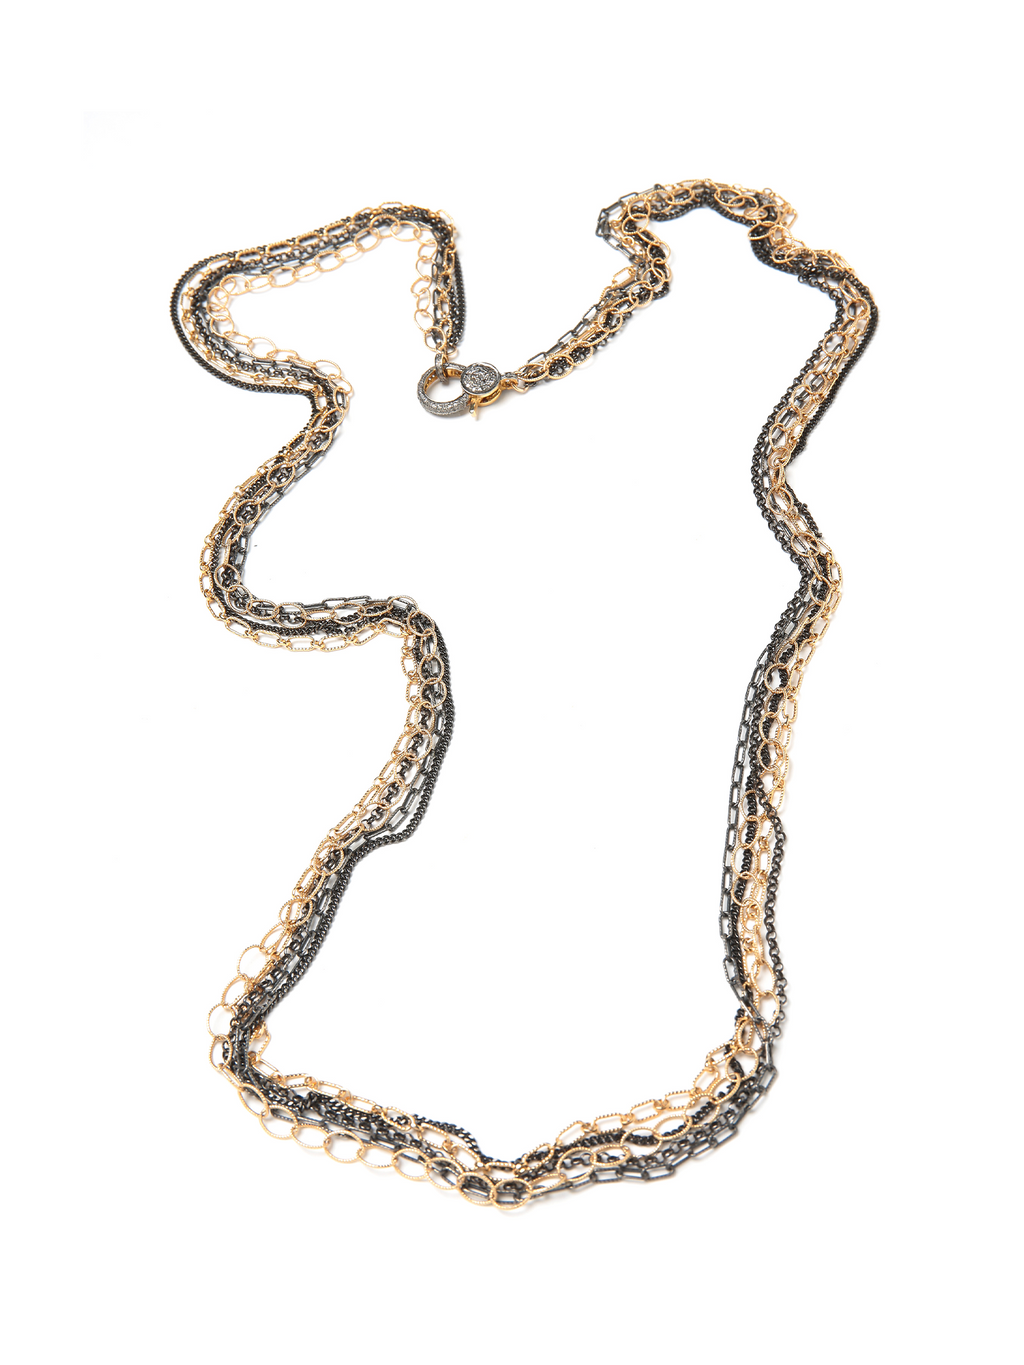 Margo Morrison Gold & Silver 5 Chain Combo with Diamond Clasp